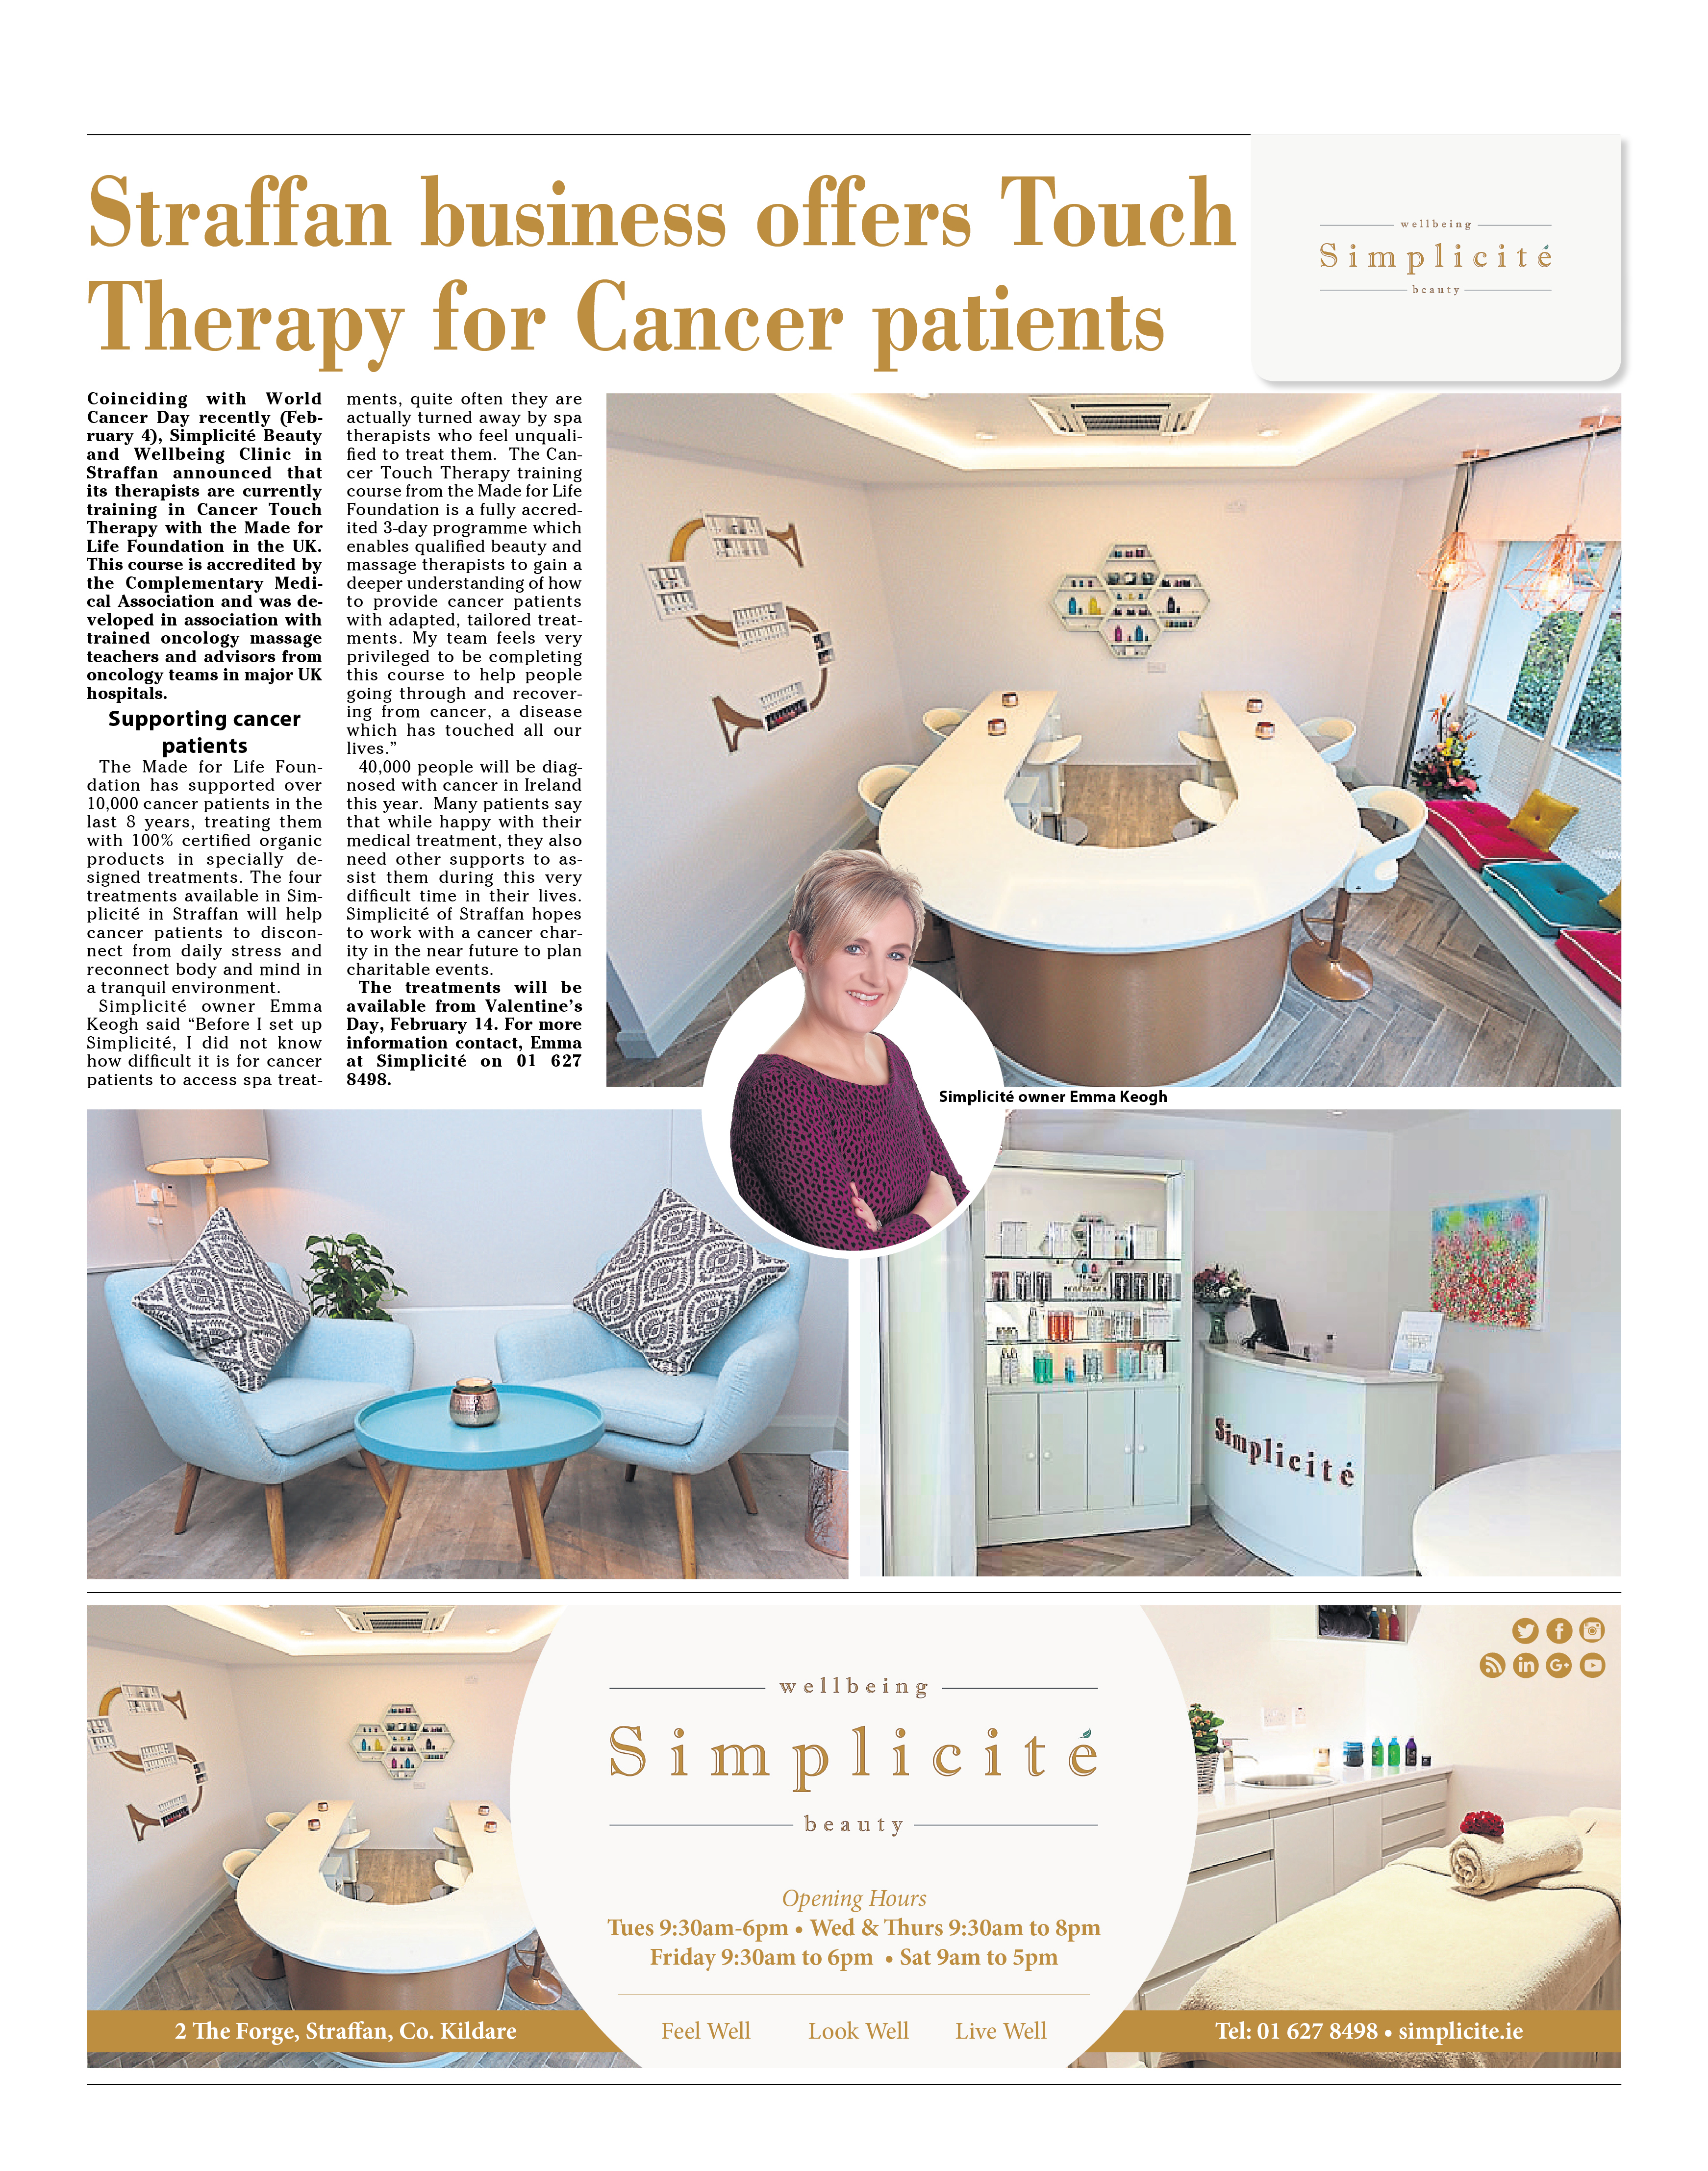 Simplicité offers Touch Therapy for Cancer Patients.